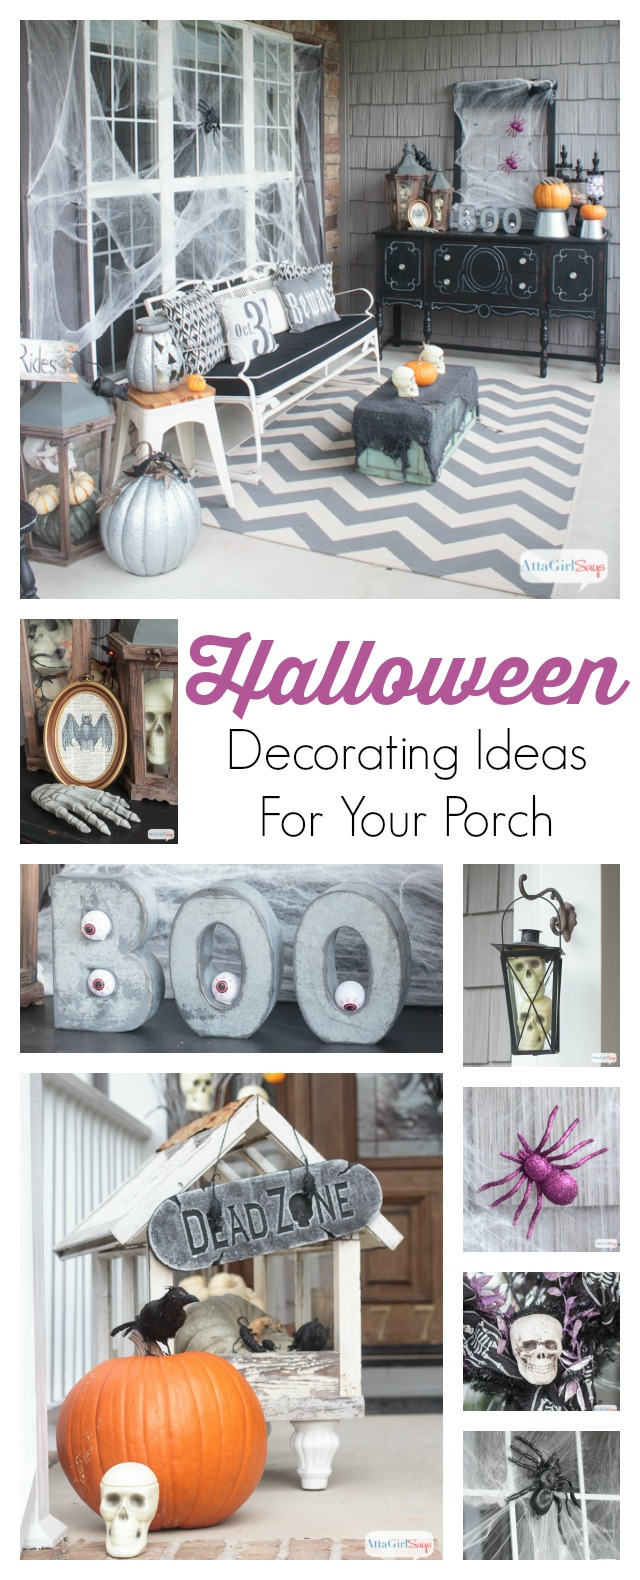 You'll love these scary Halloween decorations. They're spooky with but not gory, so they shouldn't scare away young trick or treaters. You'll find a lot of what you need to create this gothic horror novel vibe at the dollar store!